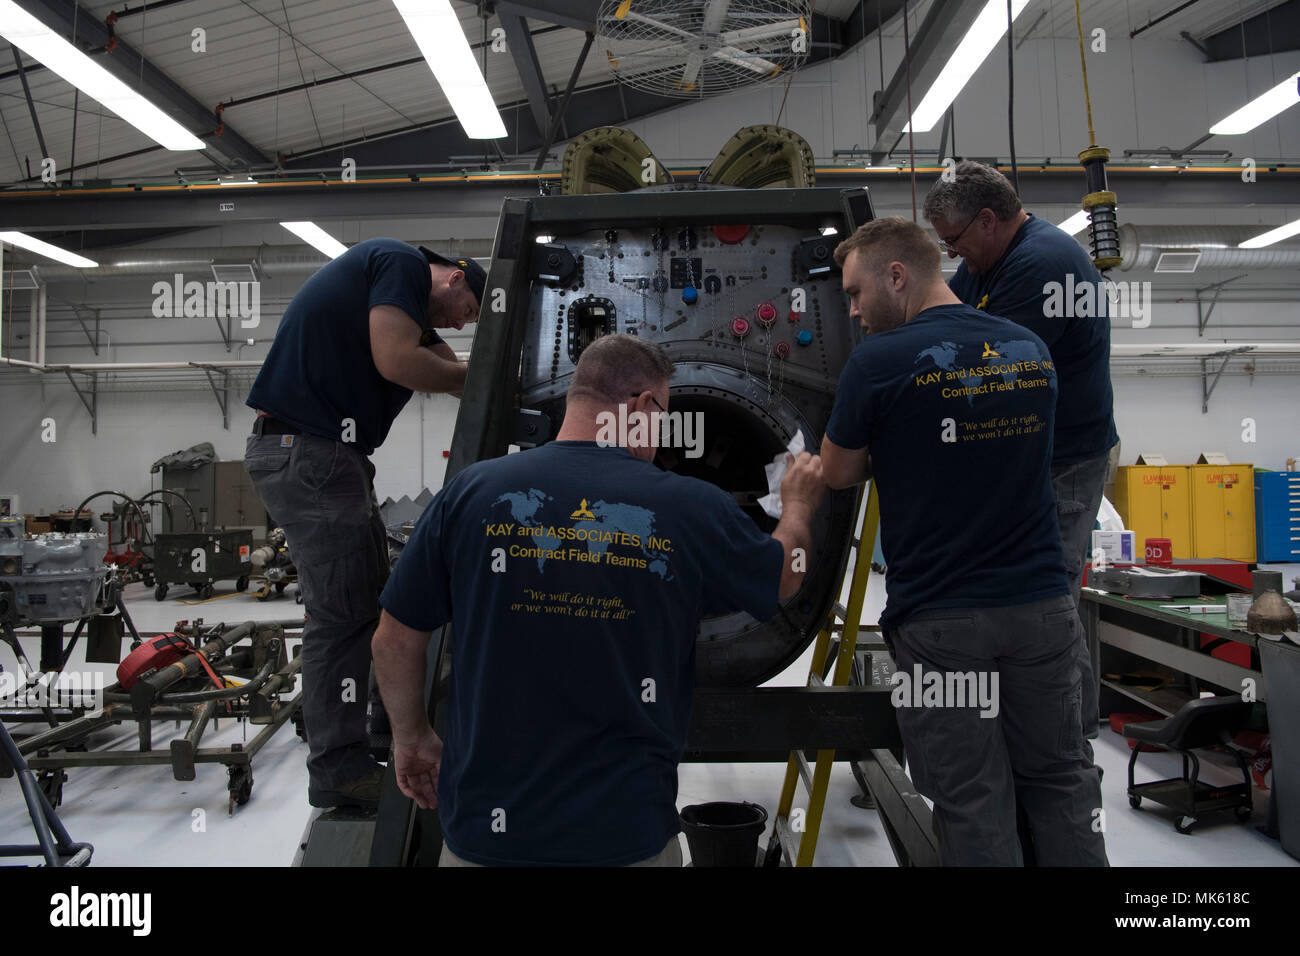 Wiring Harness Stock Photos Images Alamy Auto Manufacturers India James Duty An Airplane Mechanic Contracted Through Kay And Associates Inc Clips A